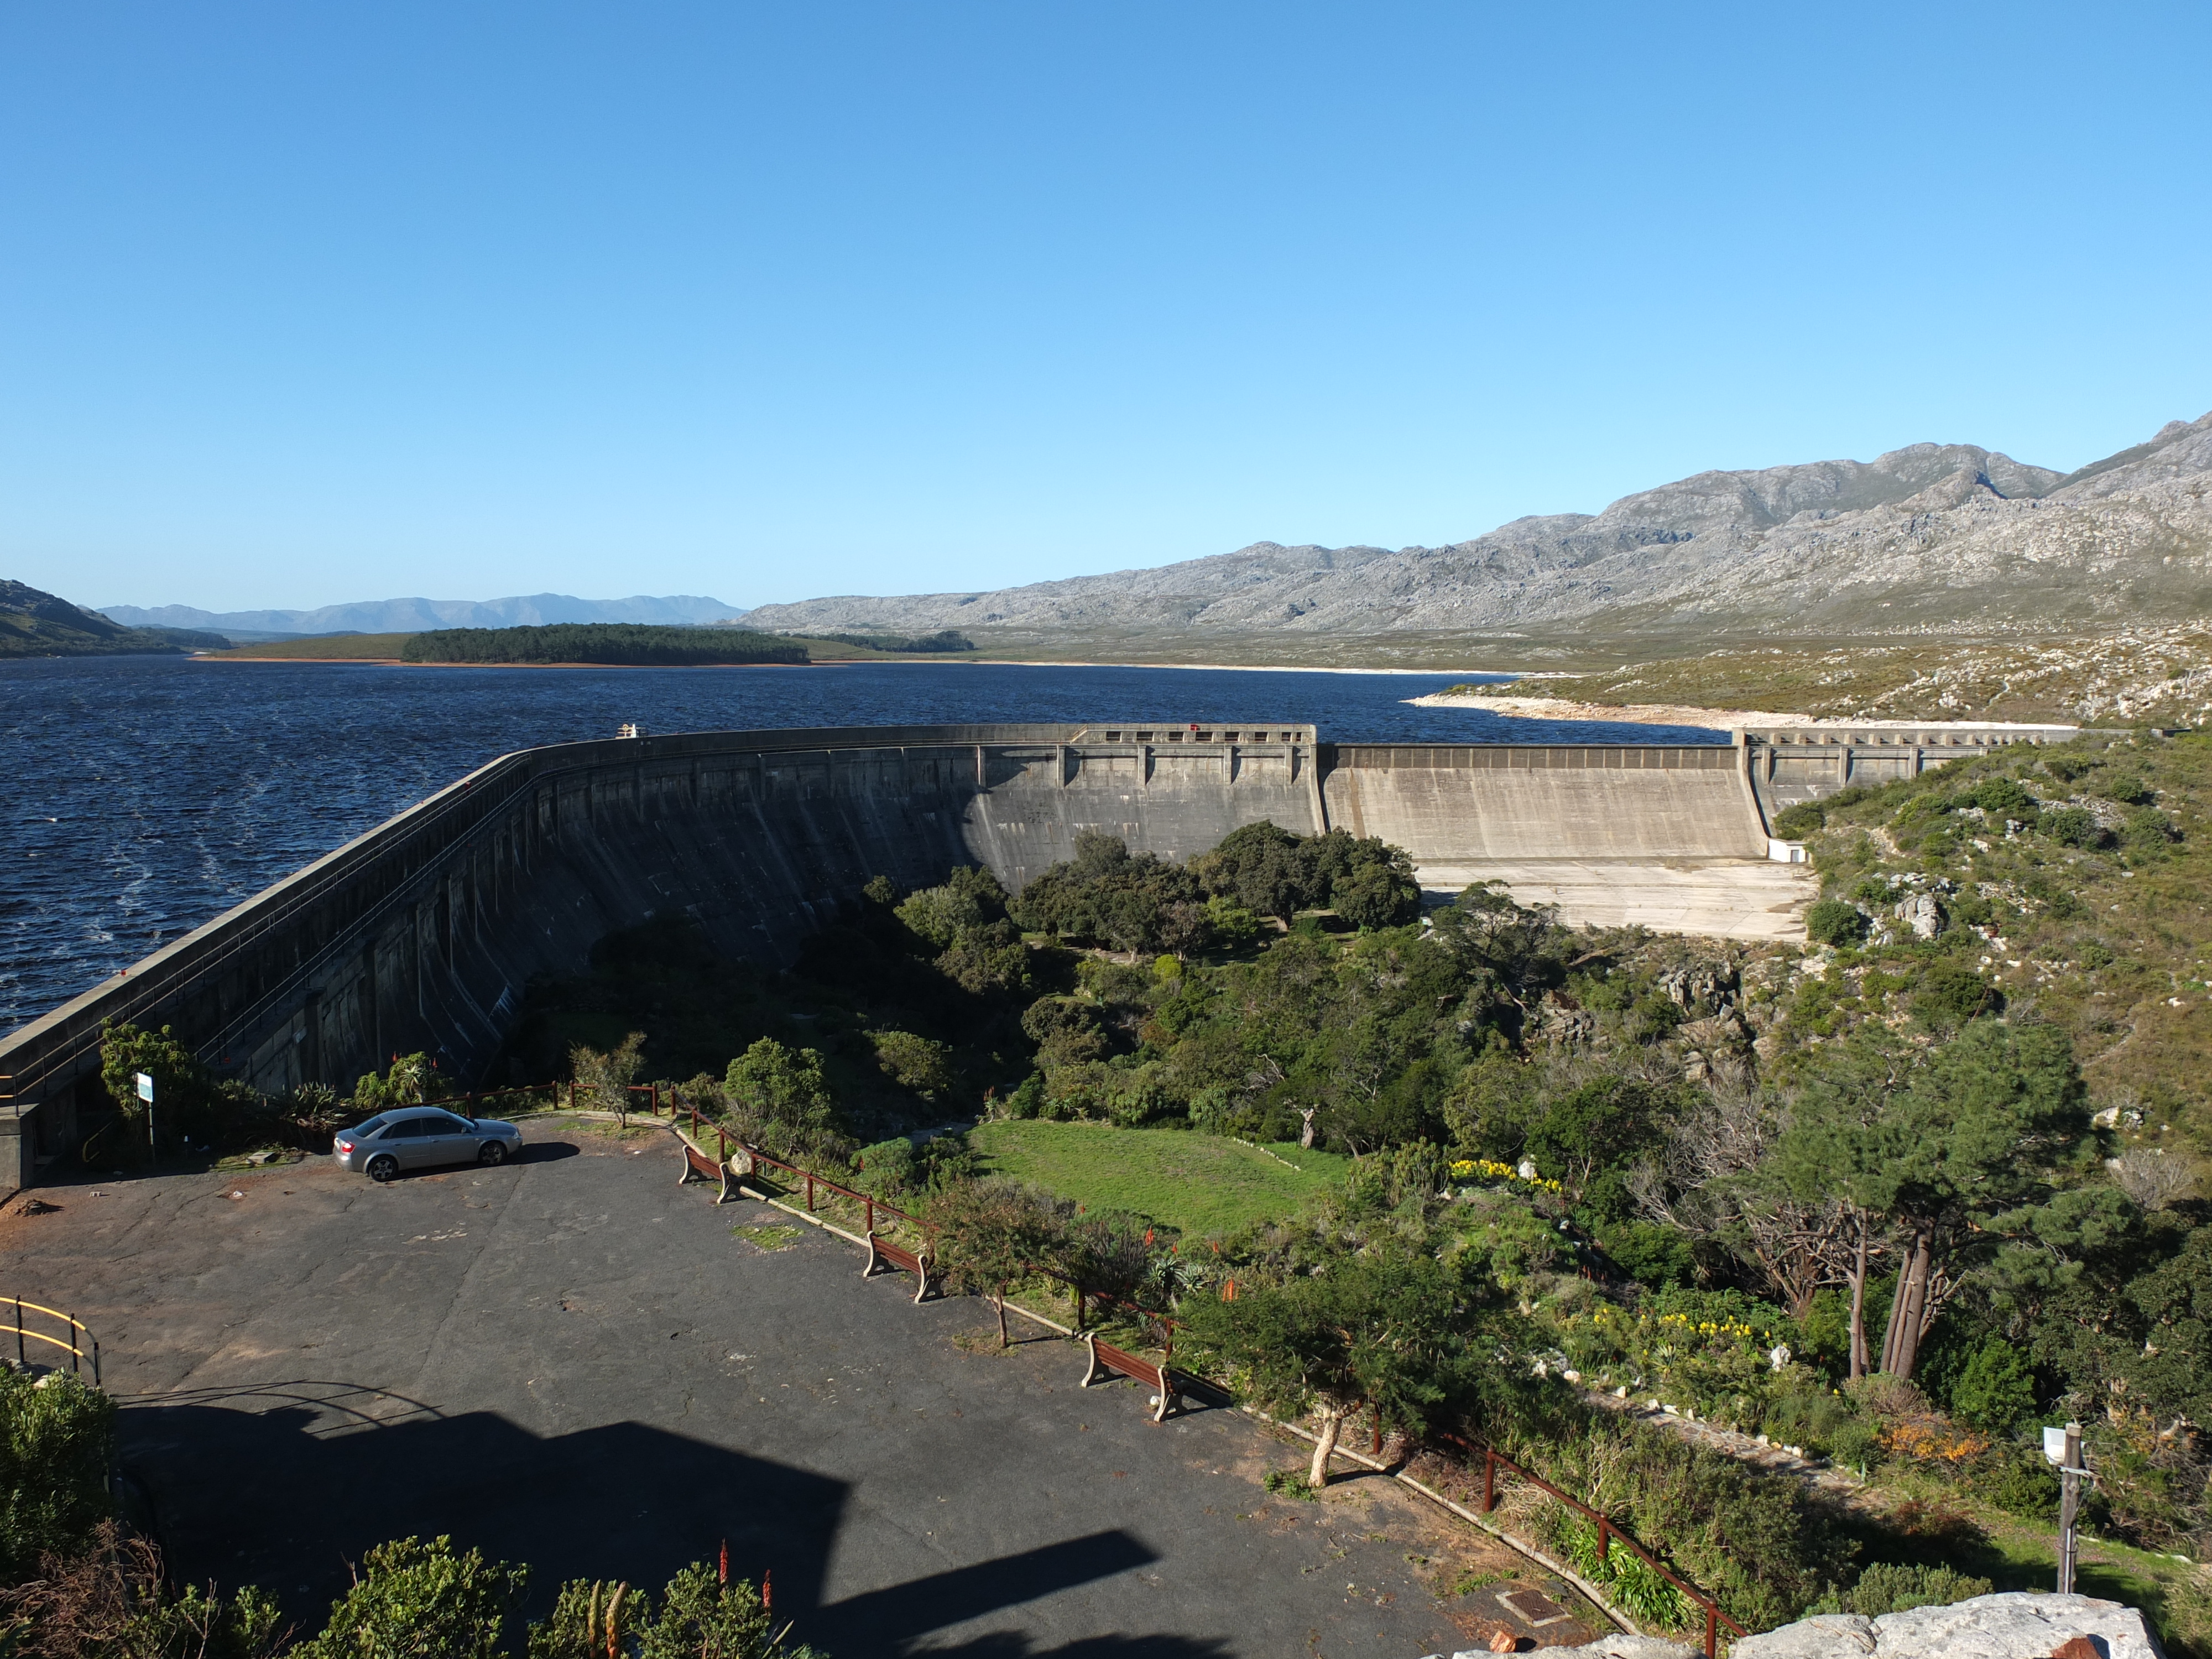 Steenbras Dam - Cape Town, South Africa